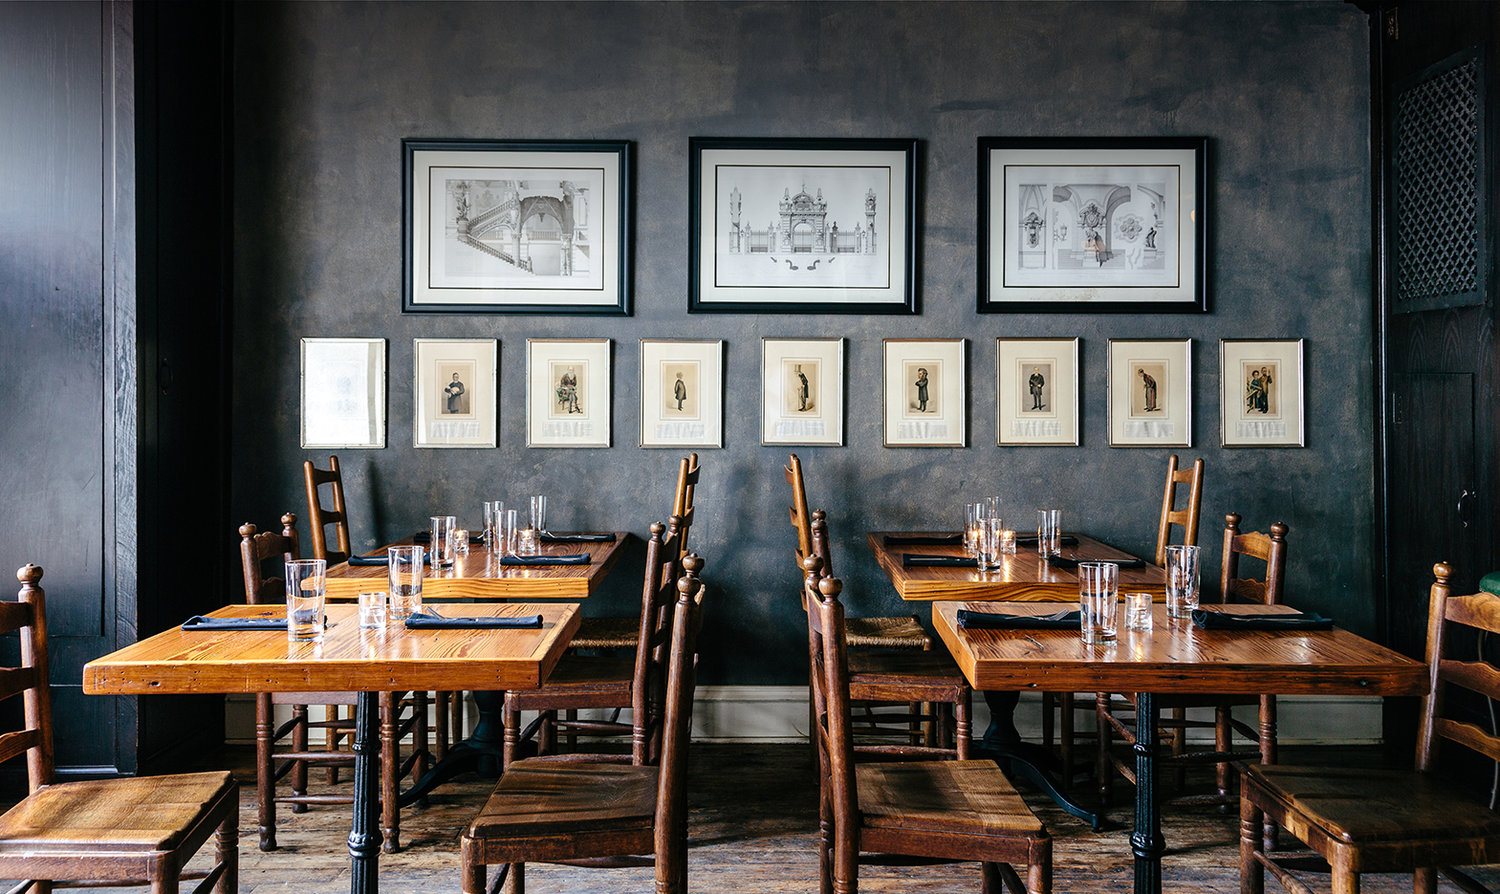 PHOTO ©SARA ESSEX BRADLEY